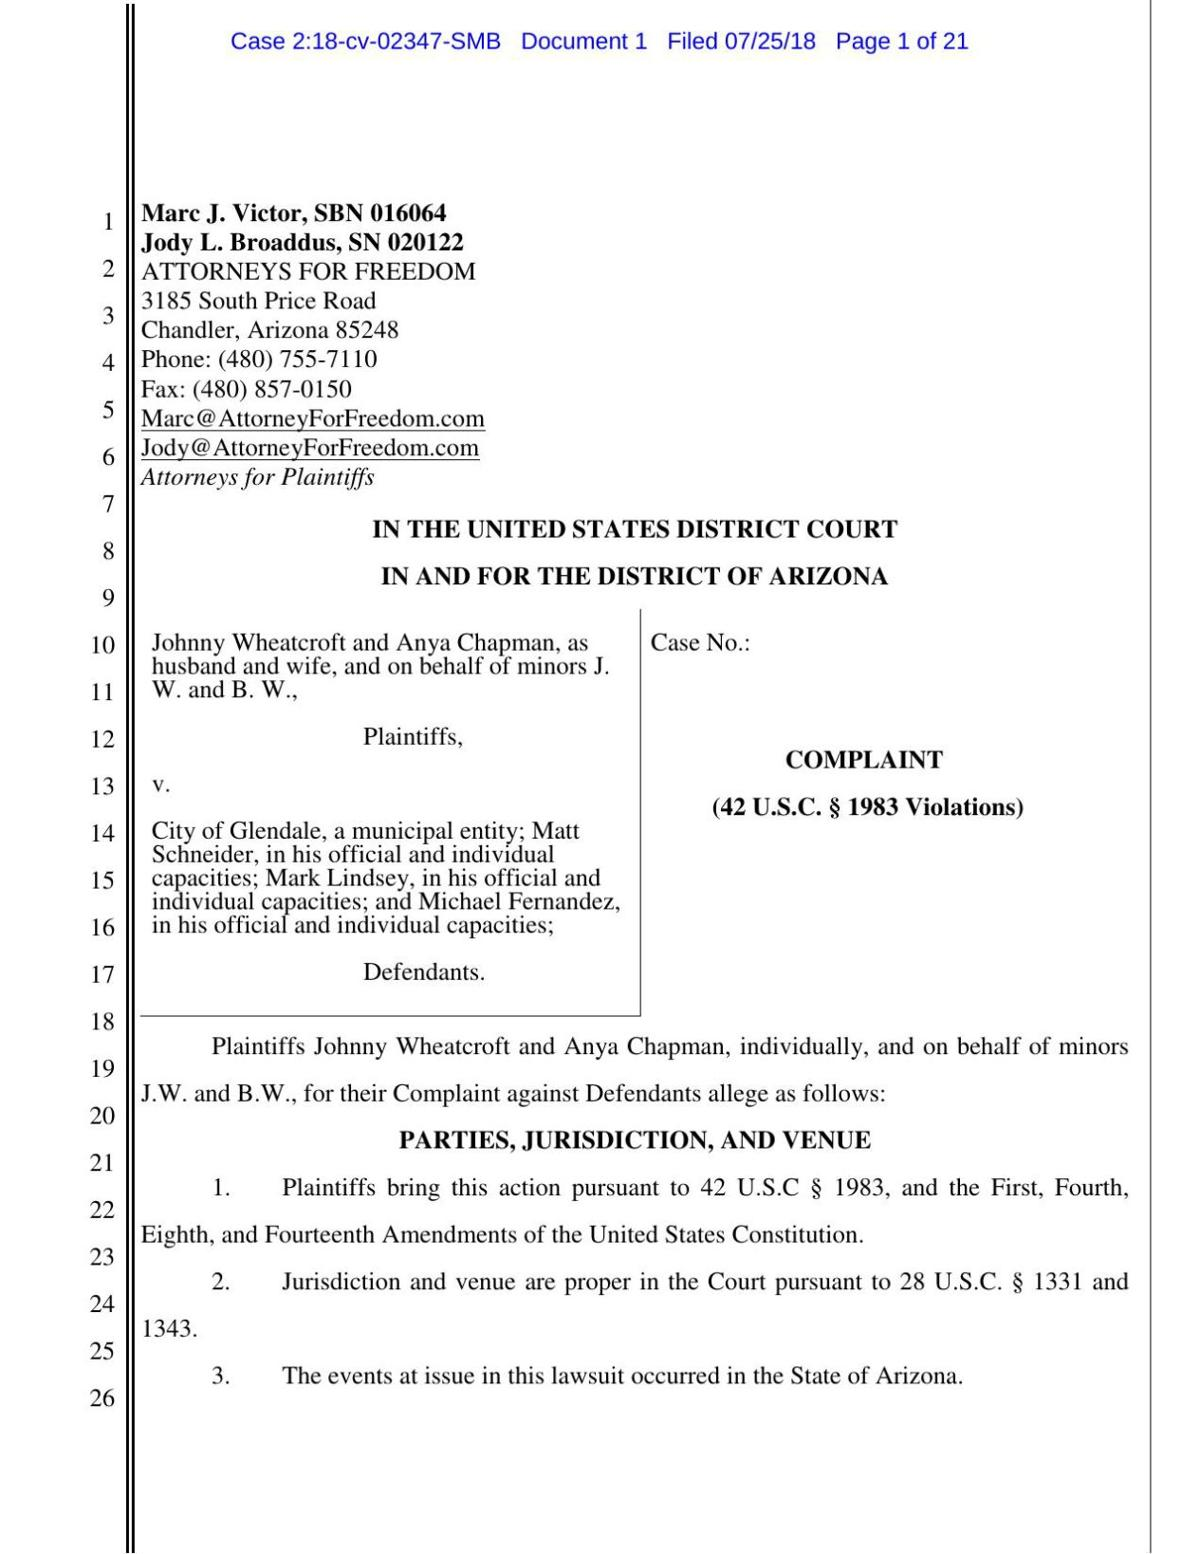 PDF: Complaint filed by Wheatcroft and Chapman